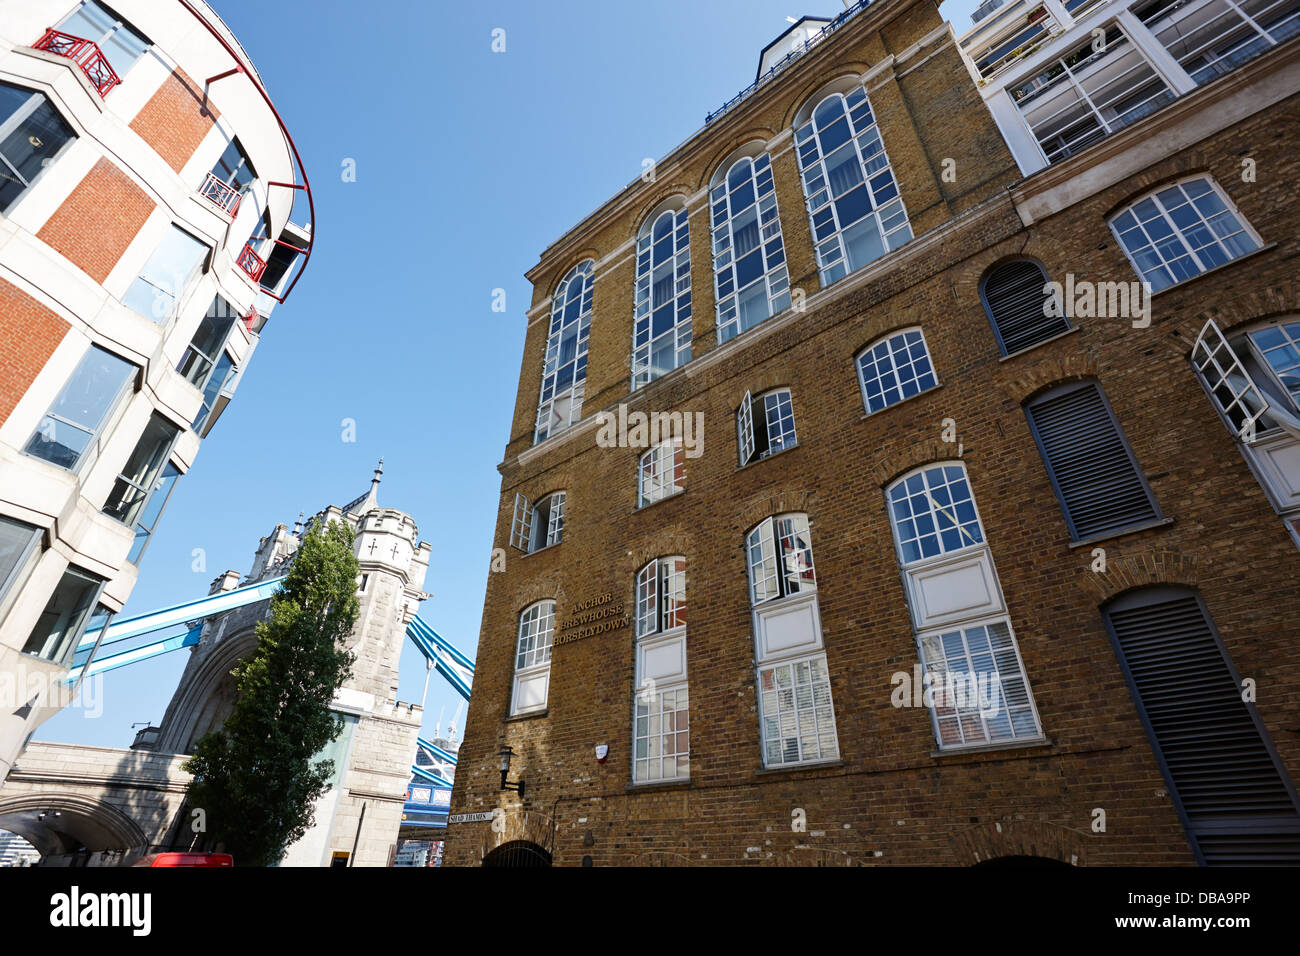 anchor brewhouse in horselydown lane shad thames London England UK - Stock Image